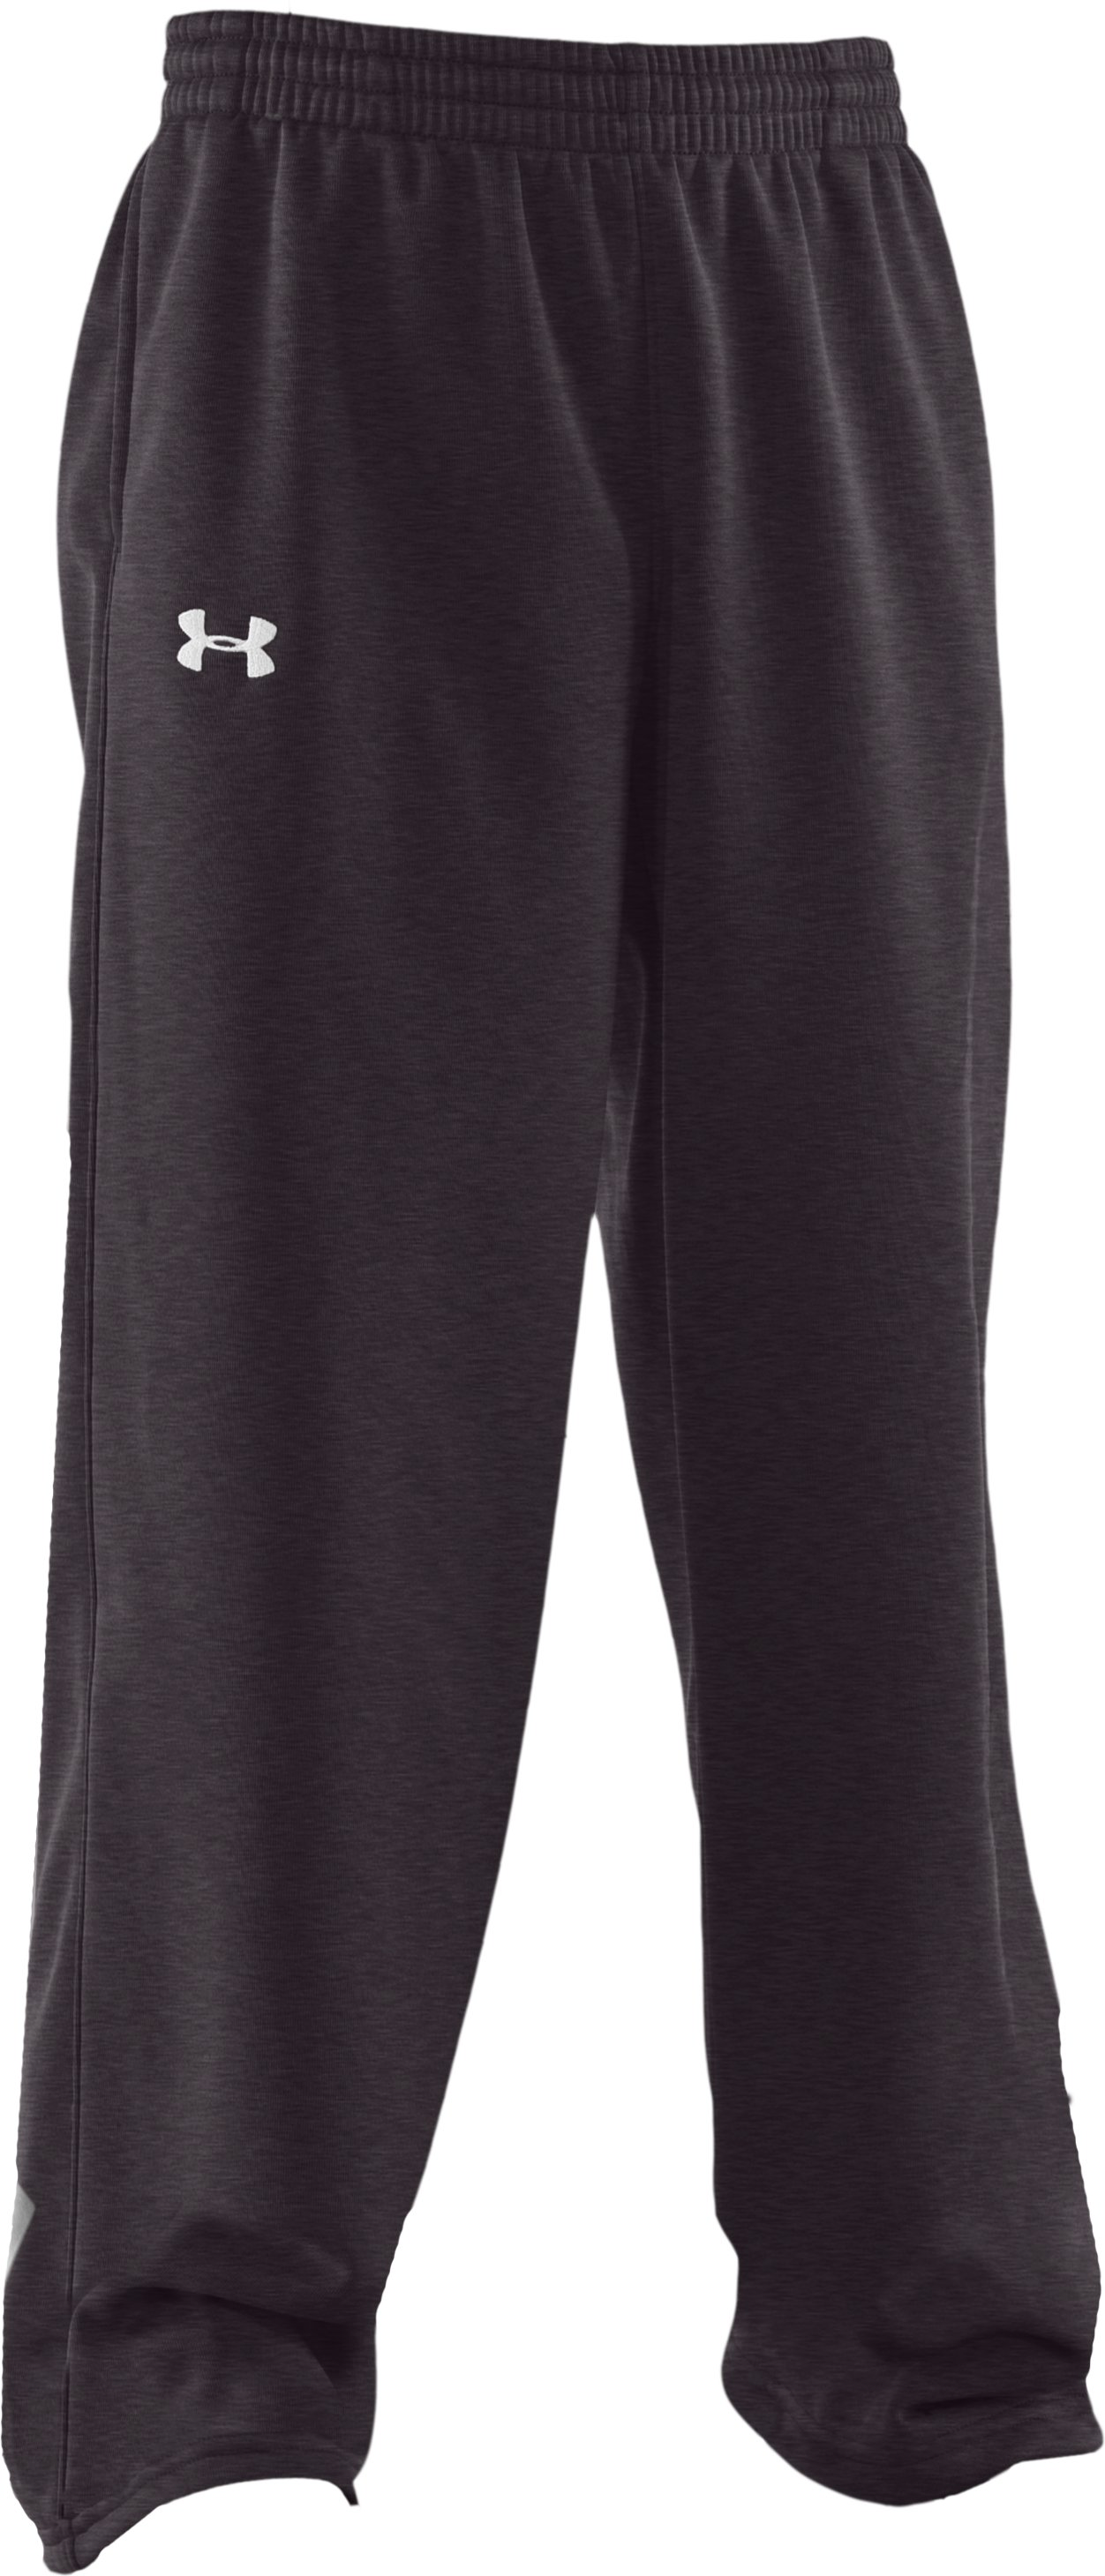 Boys' Armour® Fleece Storm Pants, Carbon Heather, zoomed image